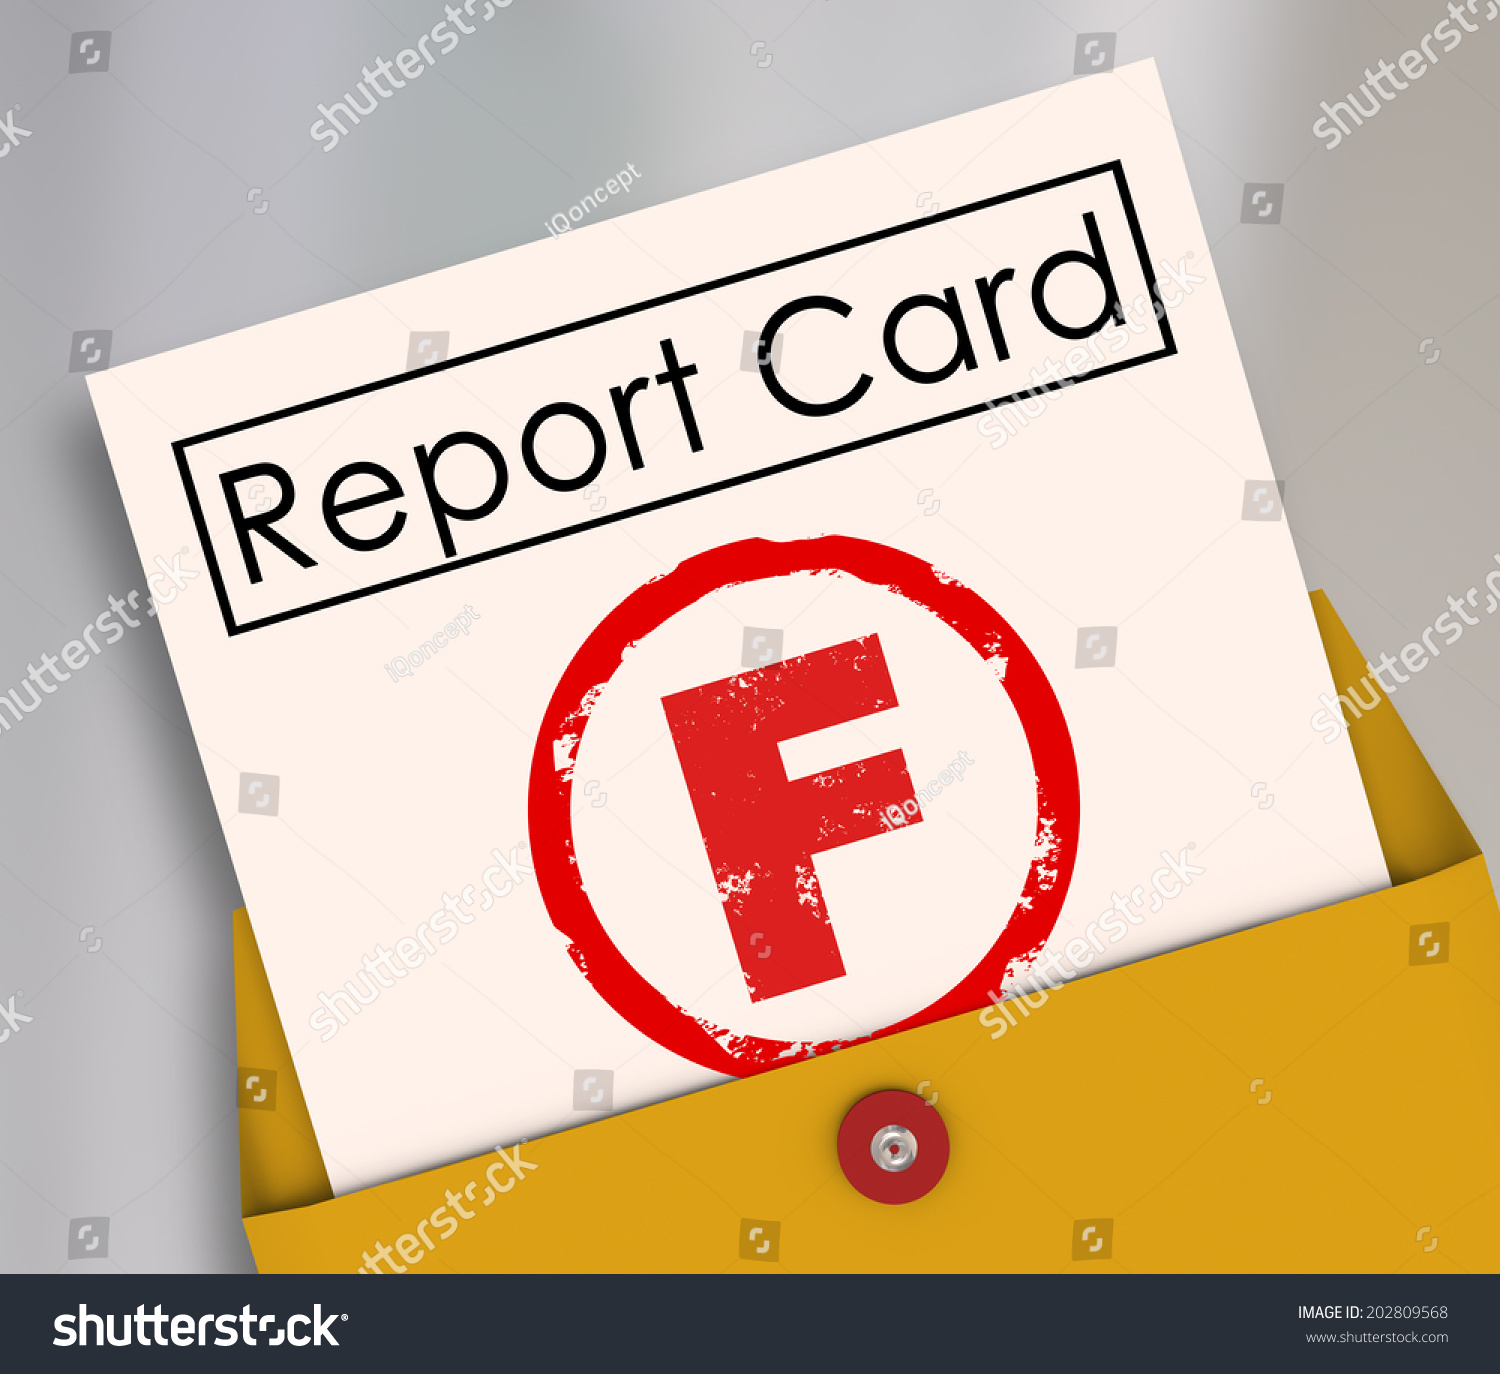 Bad report card means good cock in your pussy